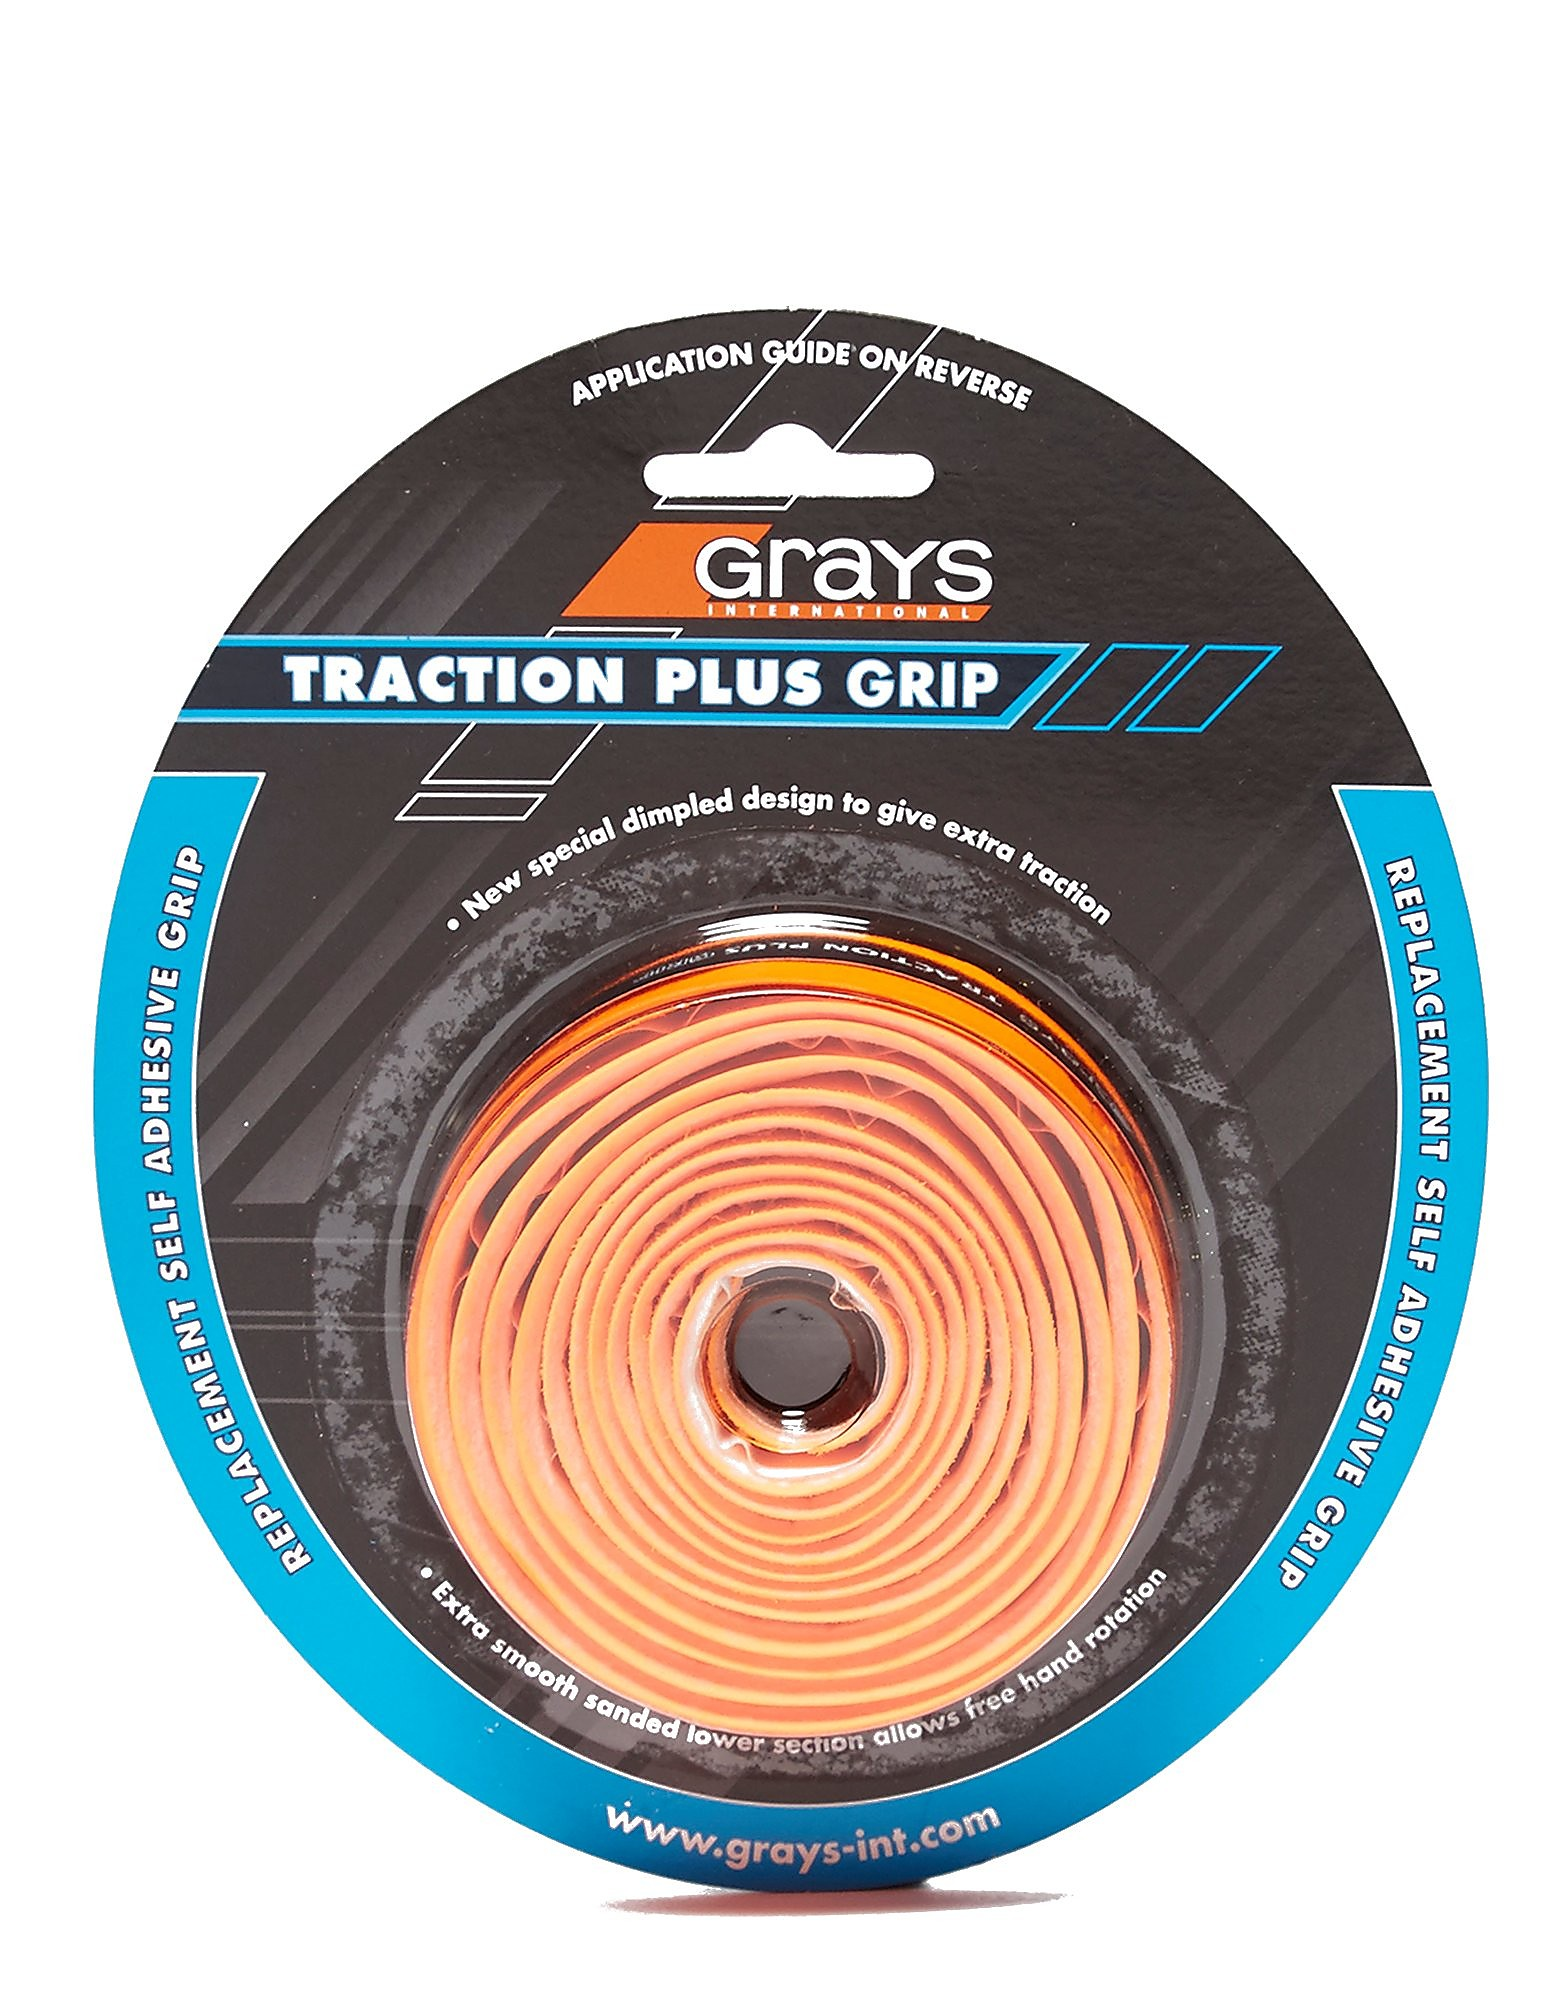 Grays TRACTION PLUS GRIP